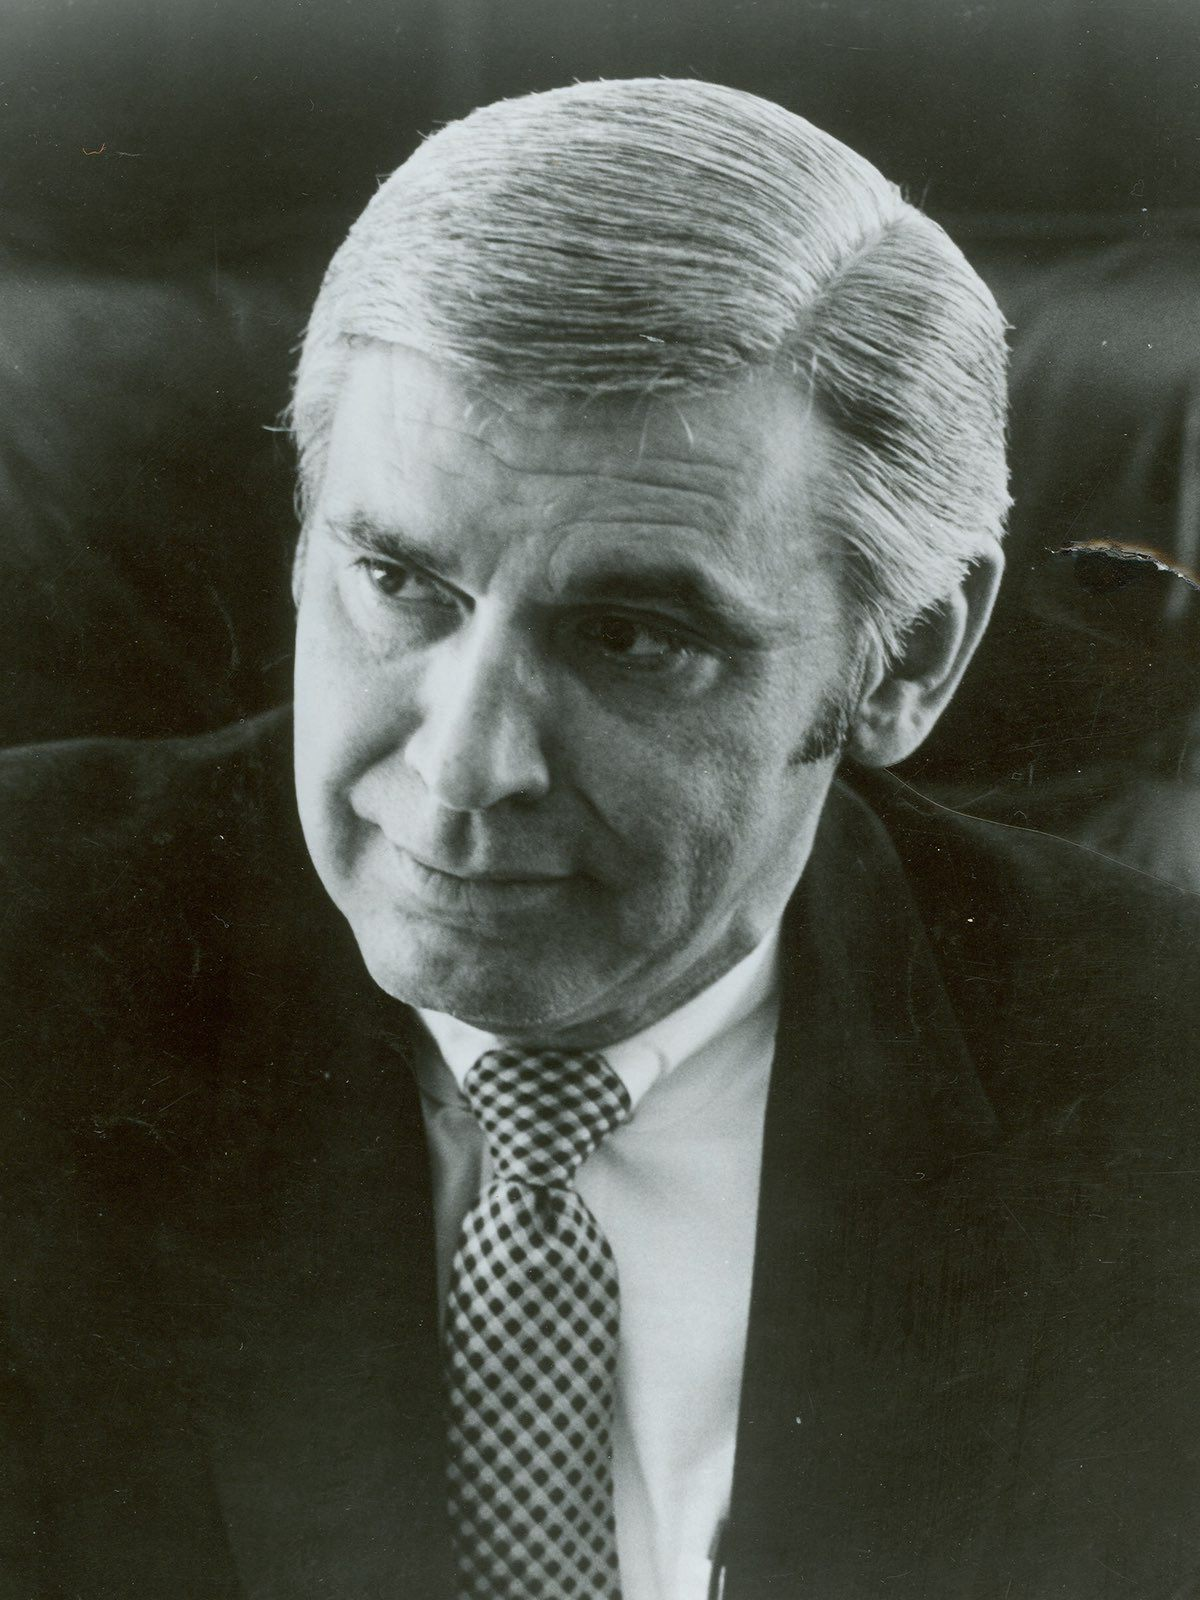 Congressman Leo Ryan led an inspection of Jonestown, but paid for it with his life